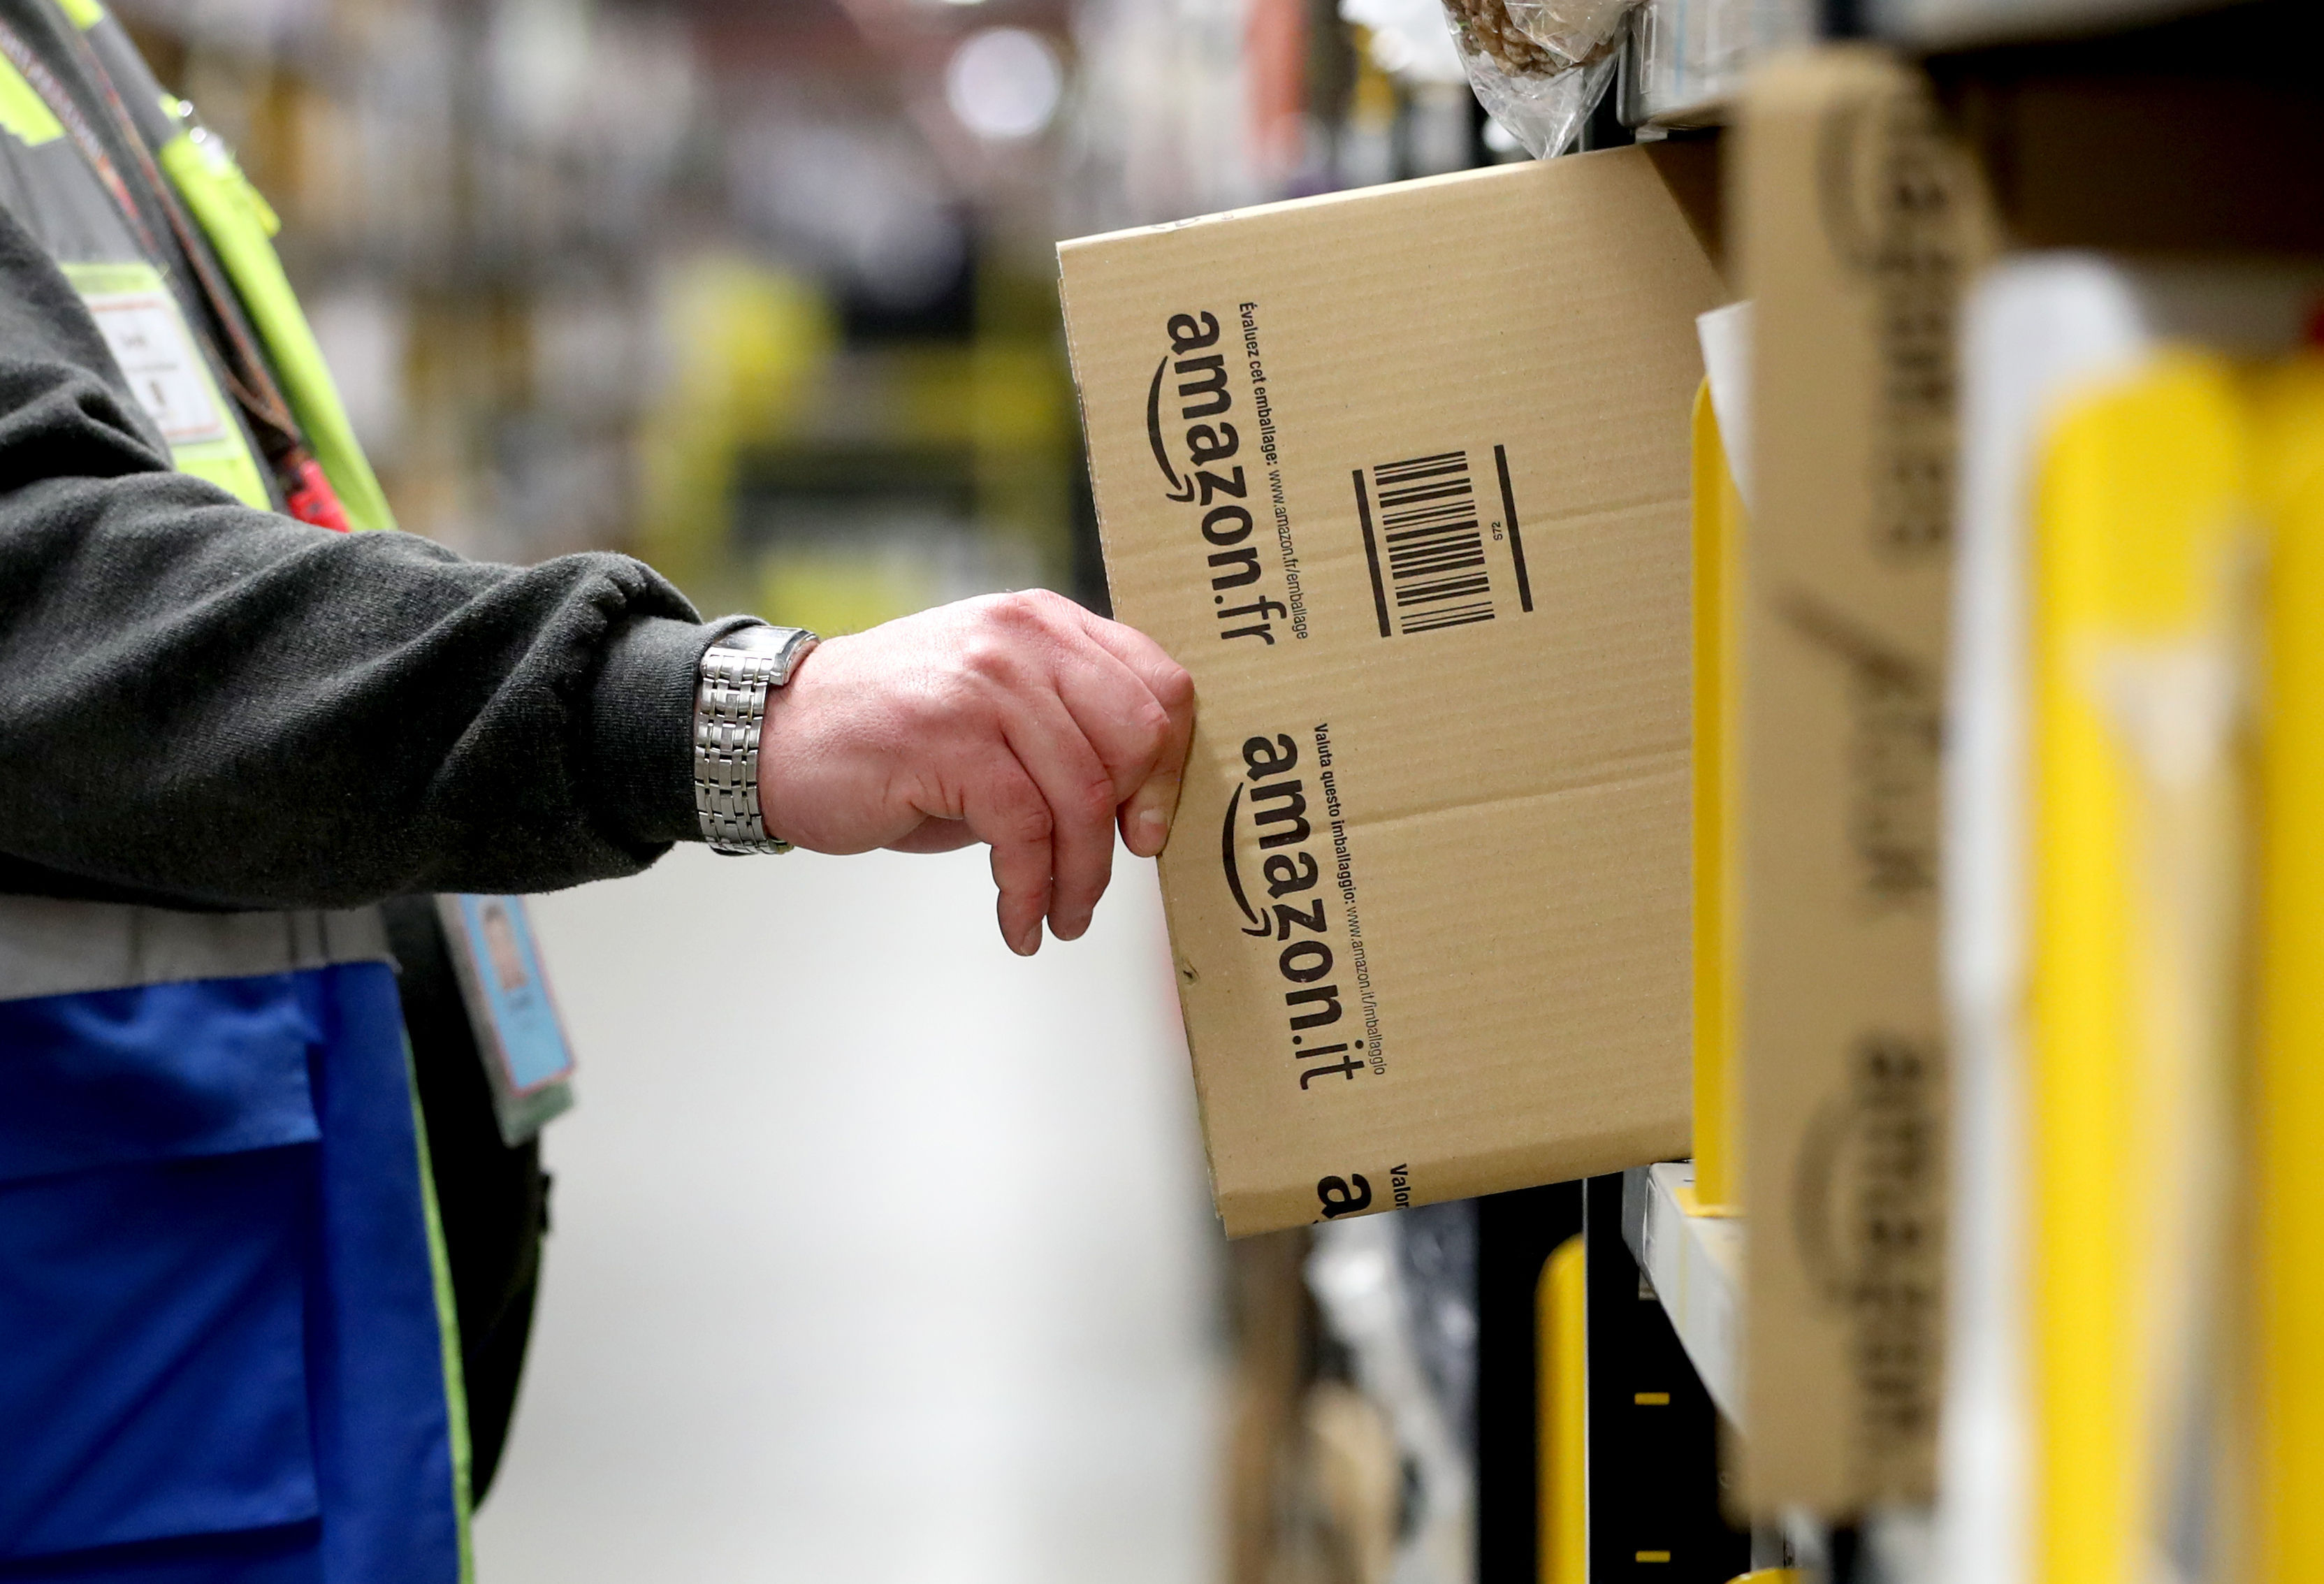 Amazon wants to stop selling 'CRaP' online.